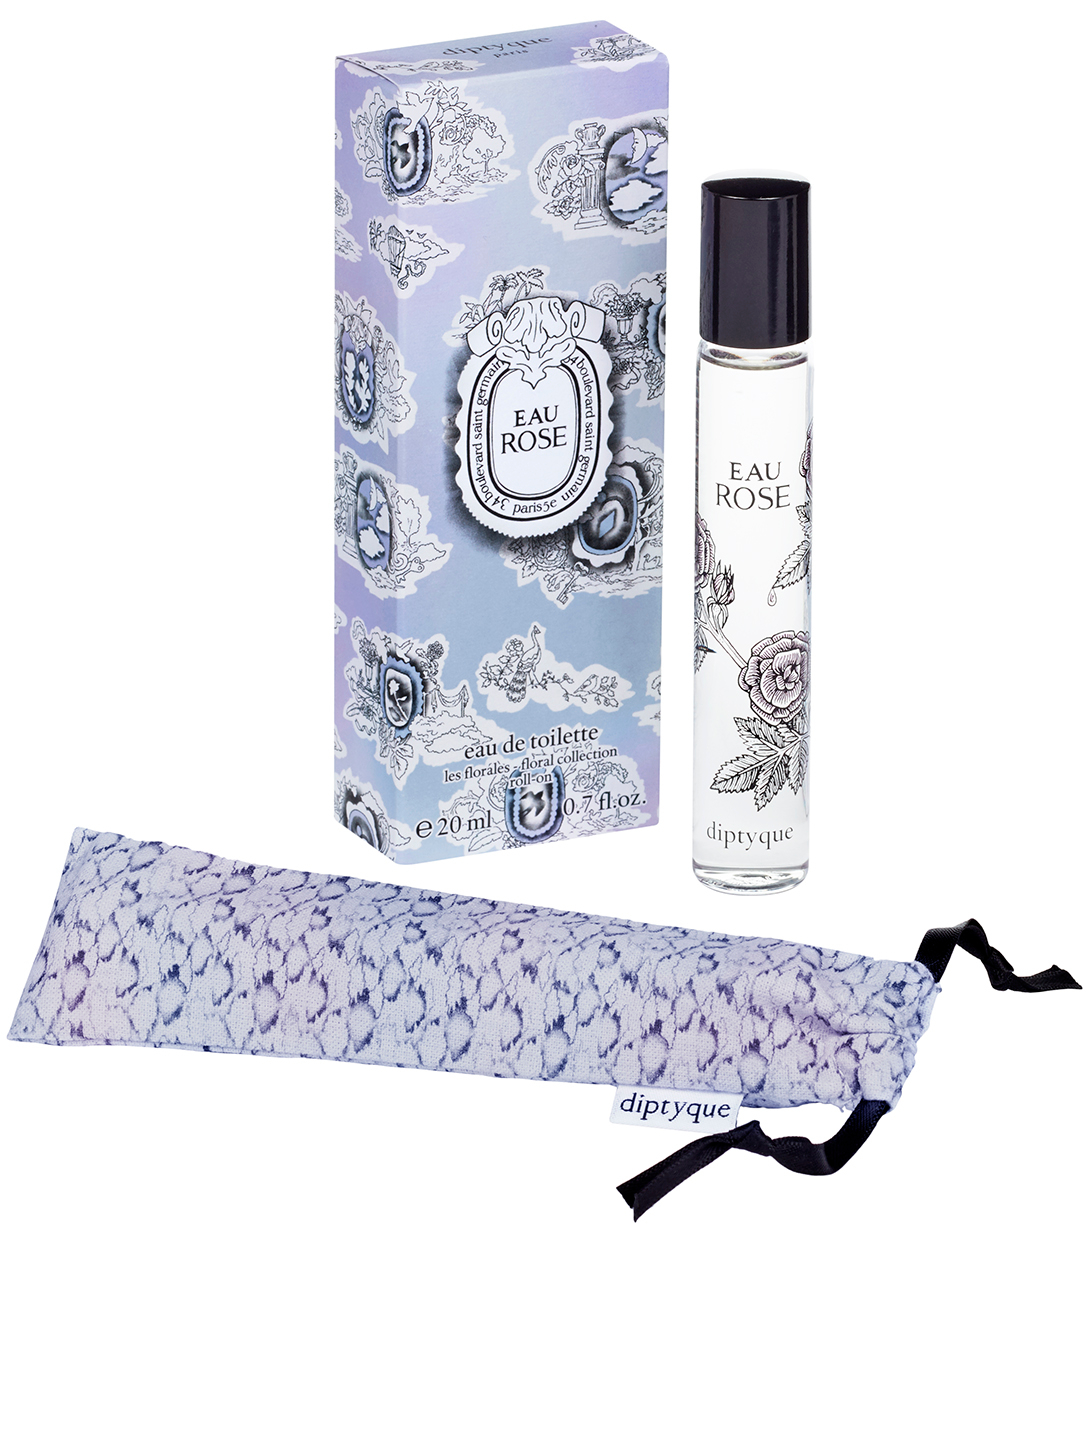 DIPTYQUE Limited Edition Eau Rose Roll-on Beauty